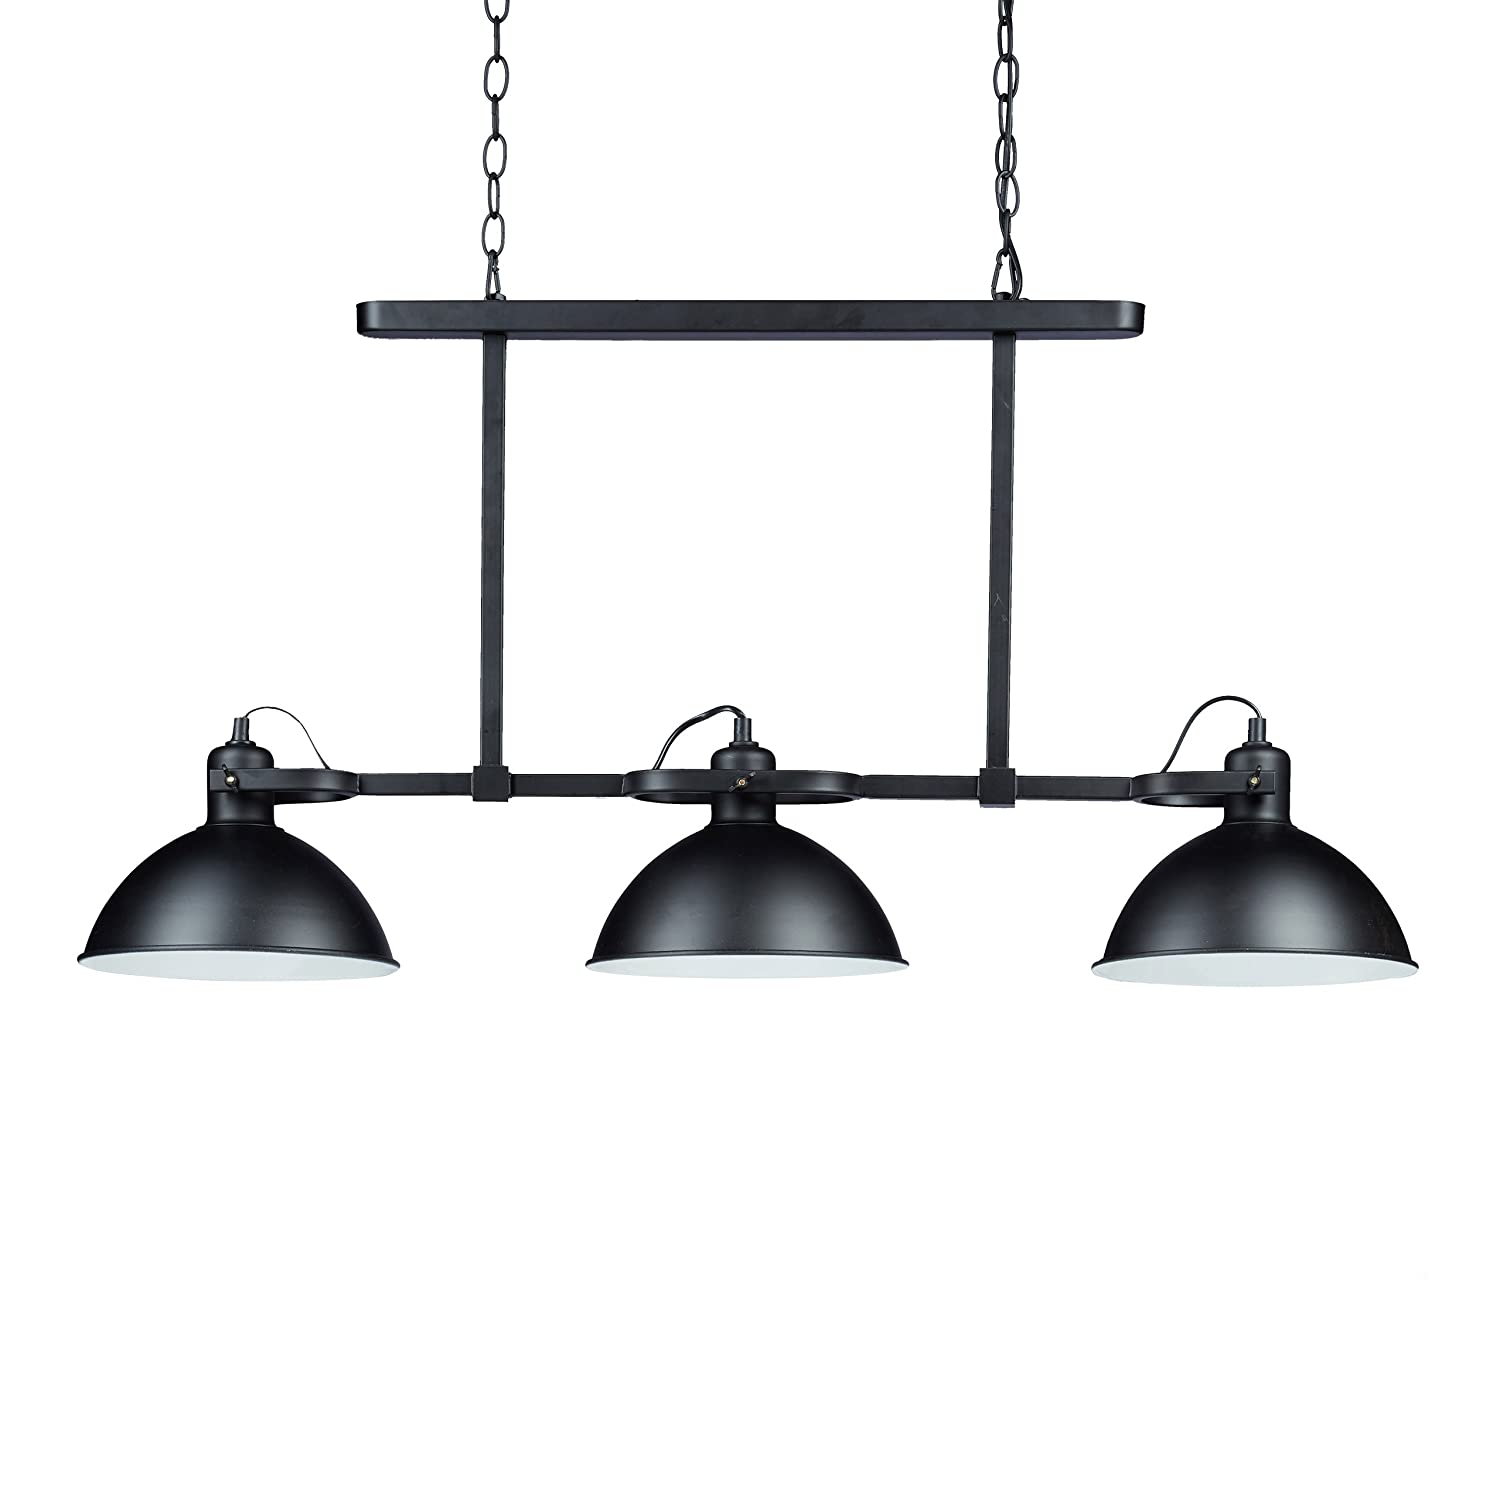 suspension 3 lampes stunning lampe suspension cuisine. Black Bedroom Furniture Sets. Home Design Ideas